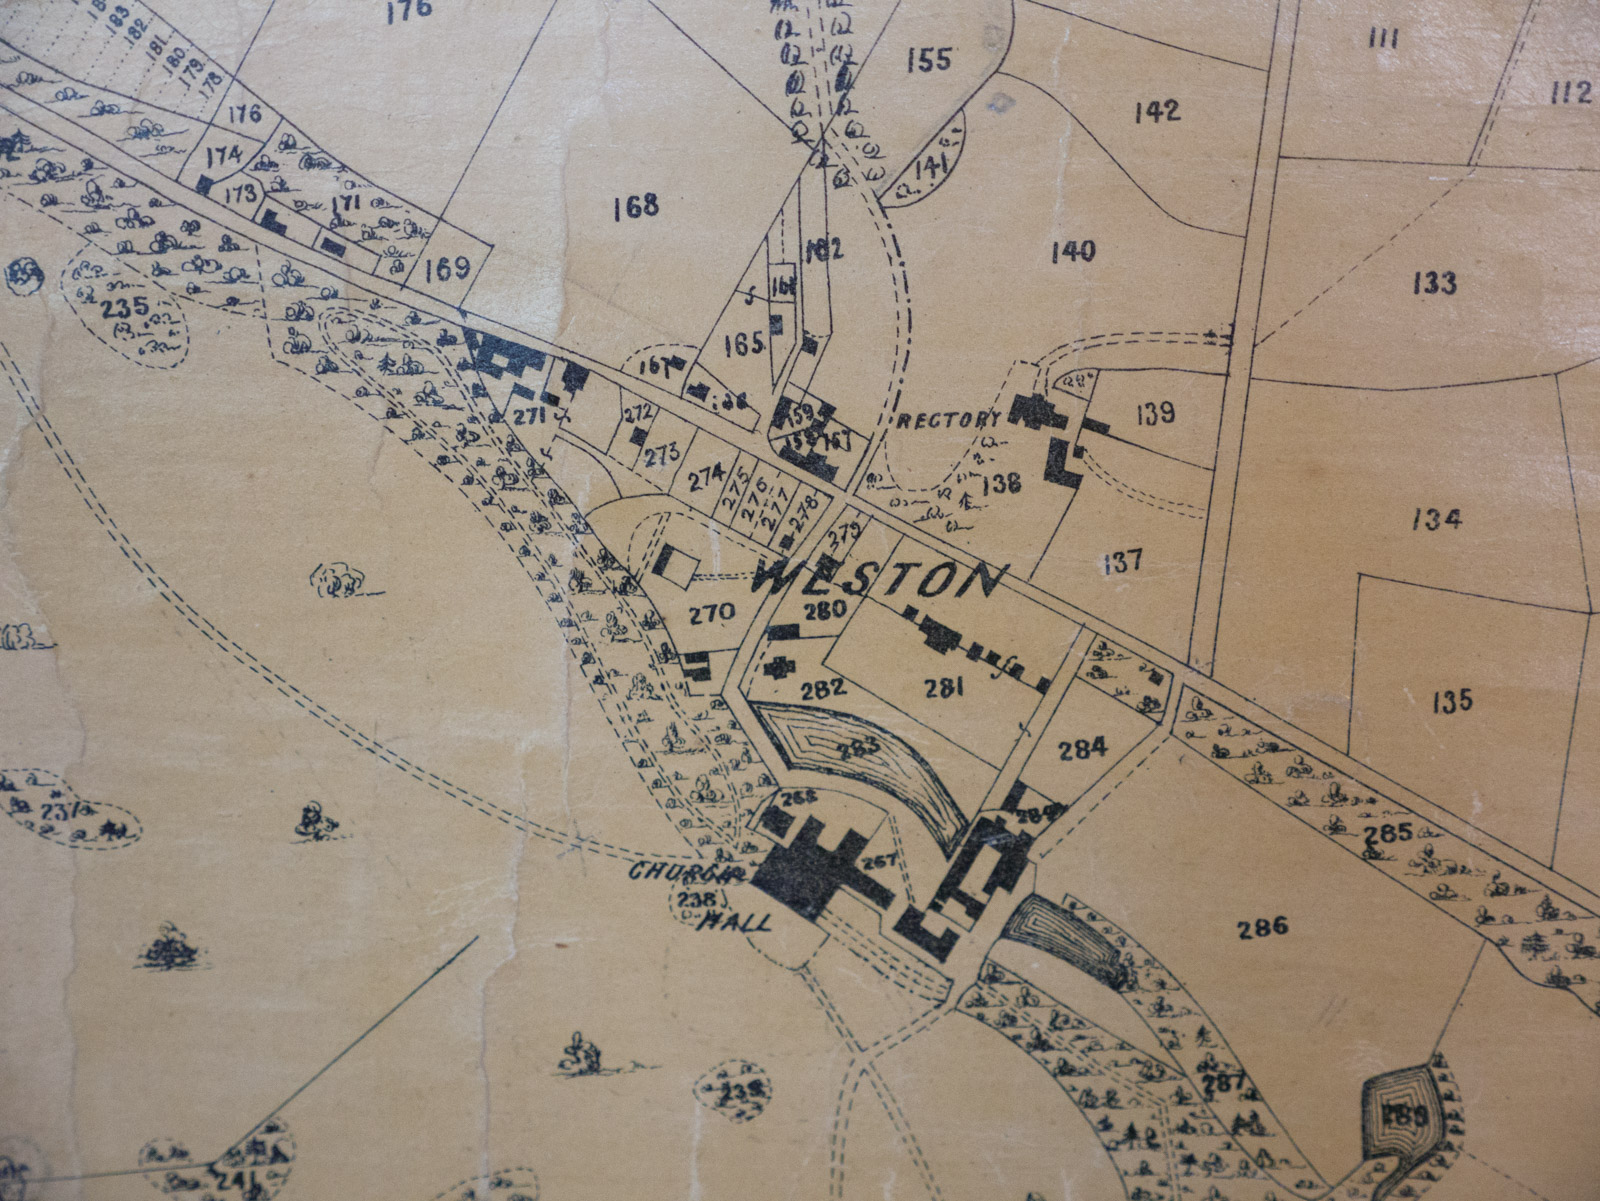 Old map of Weston Park found in one of the servants' rooms